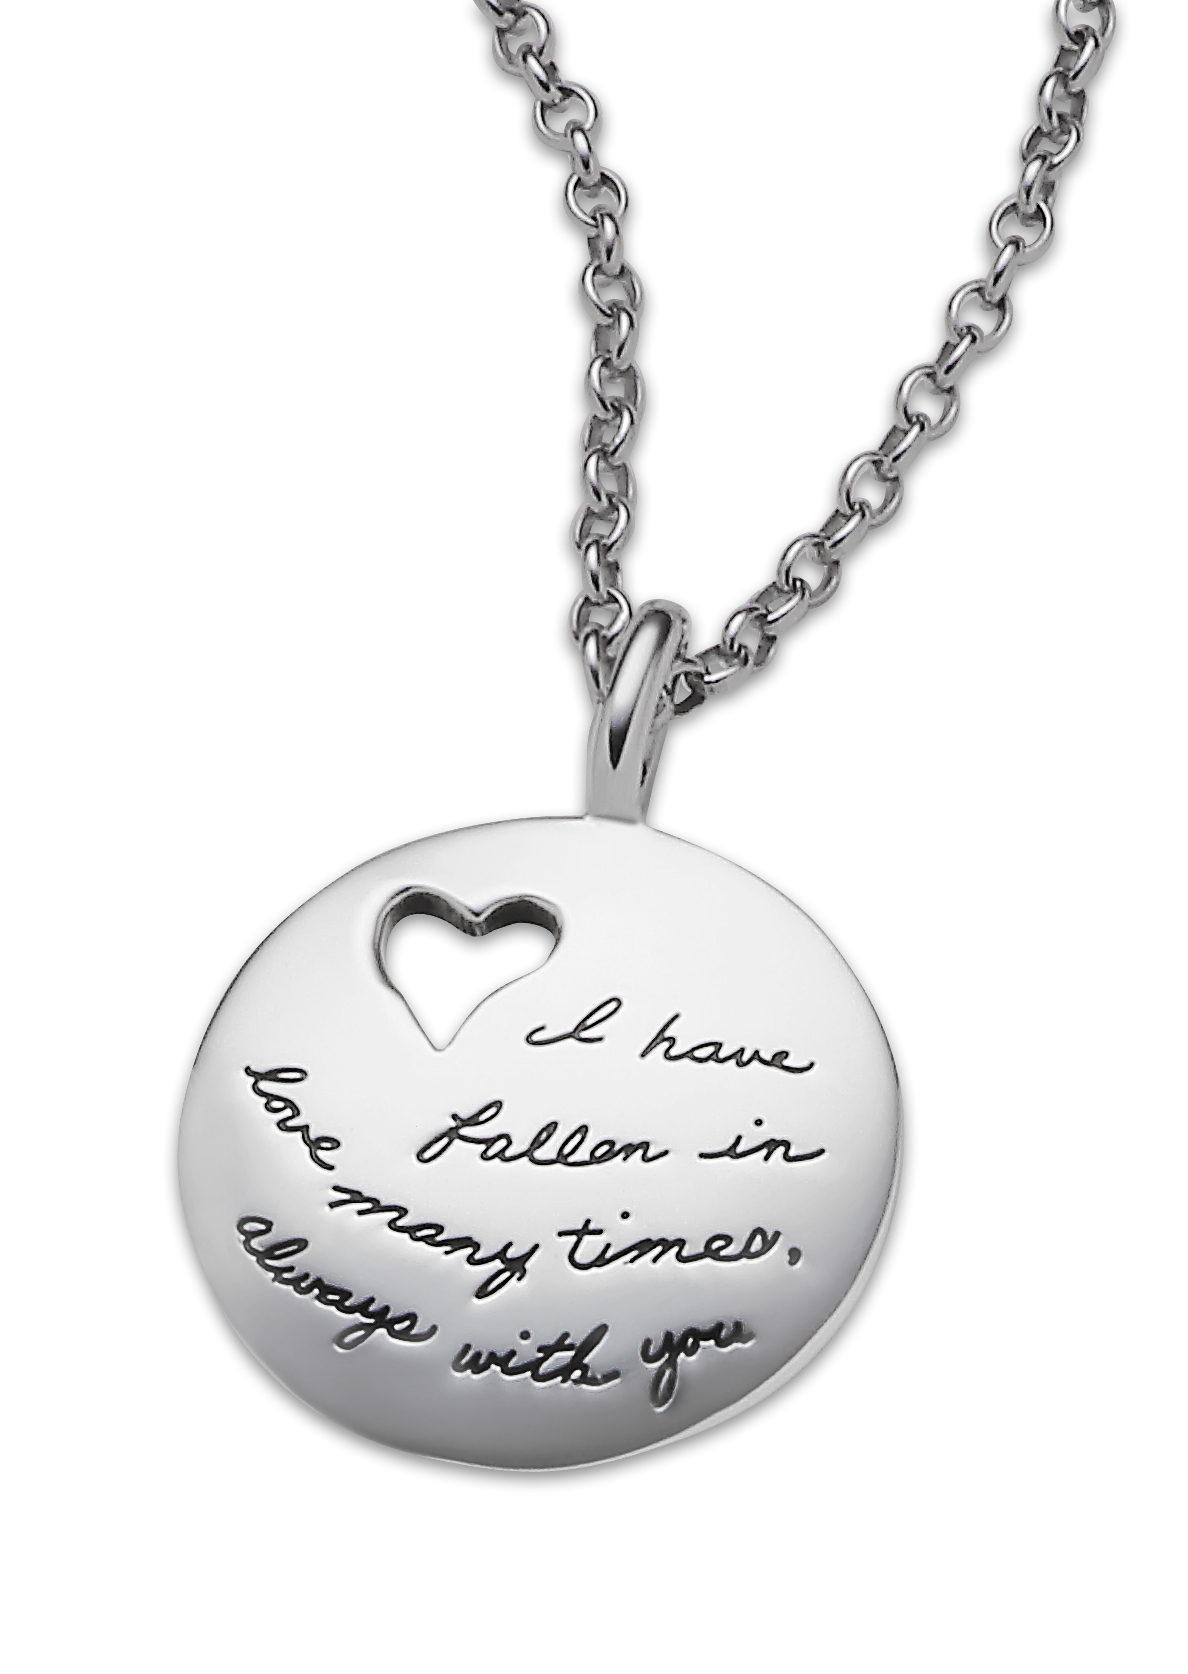 Inspirational Sterling Silver Circle Necklace with a heart cutout near the top left The quote reads: I have fallen in love many times... always with you.